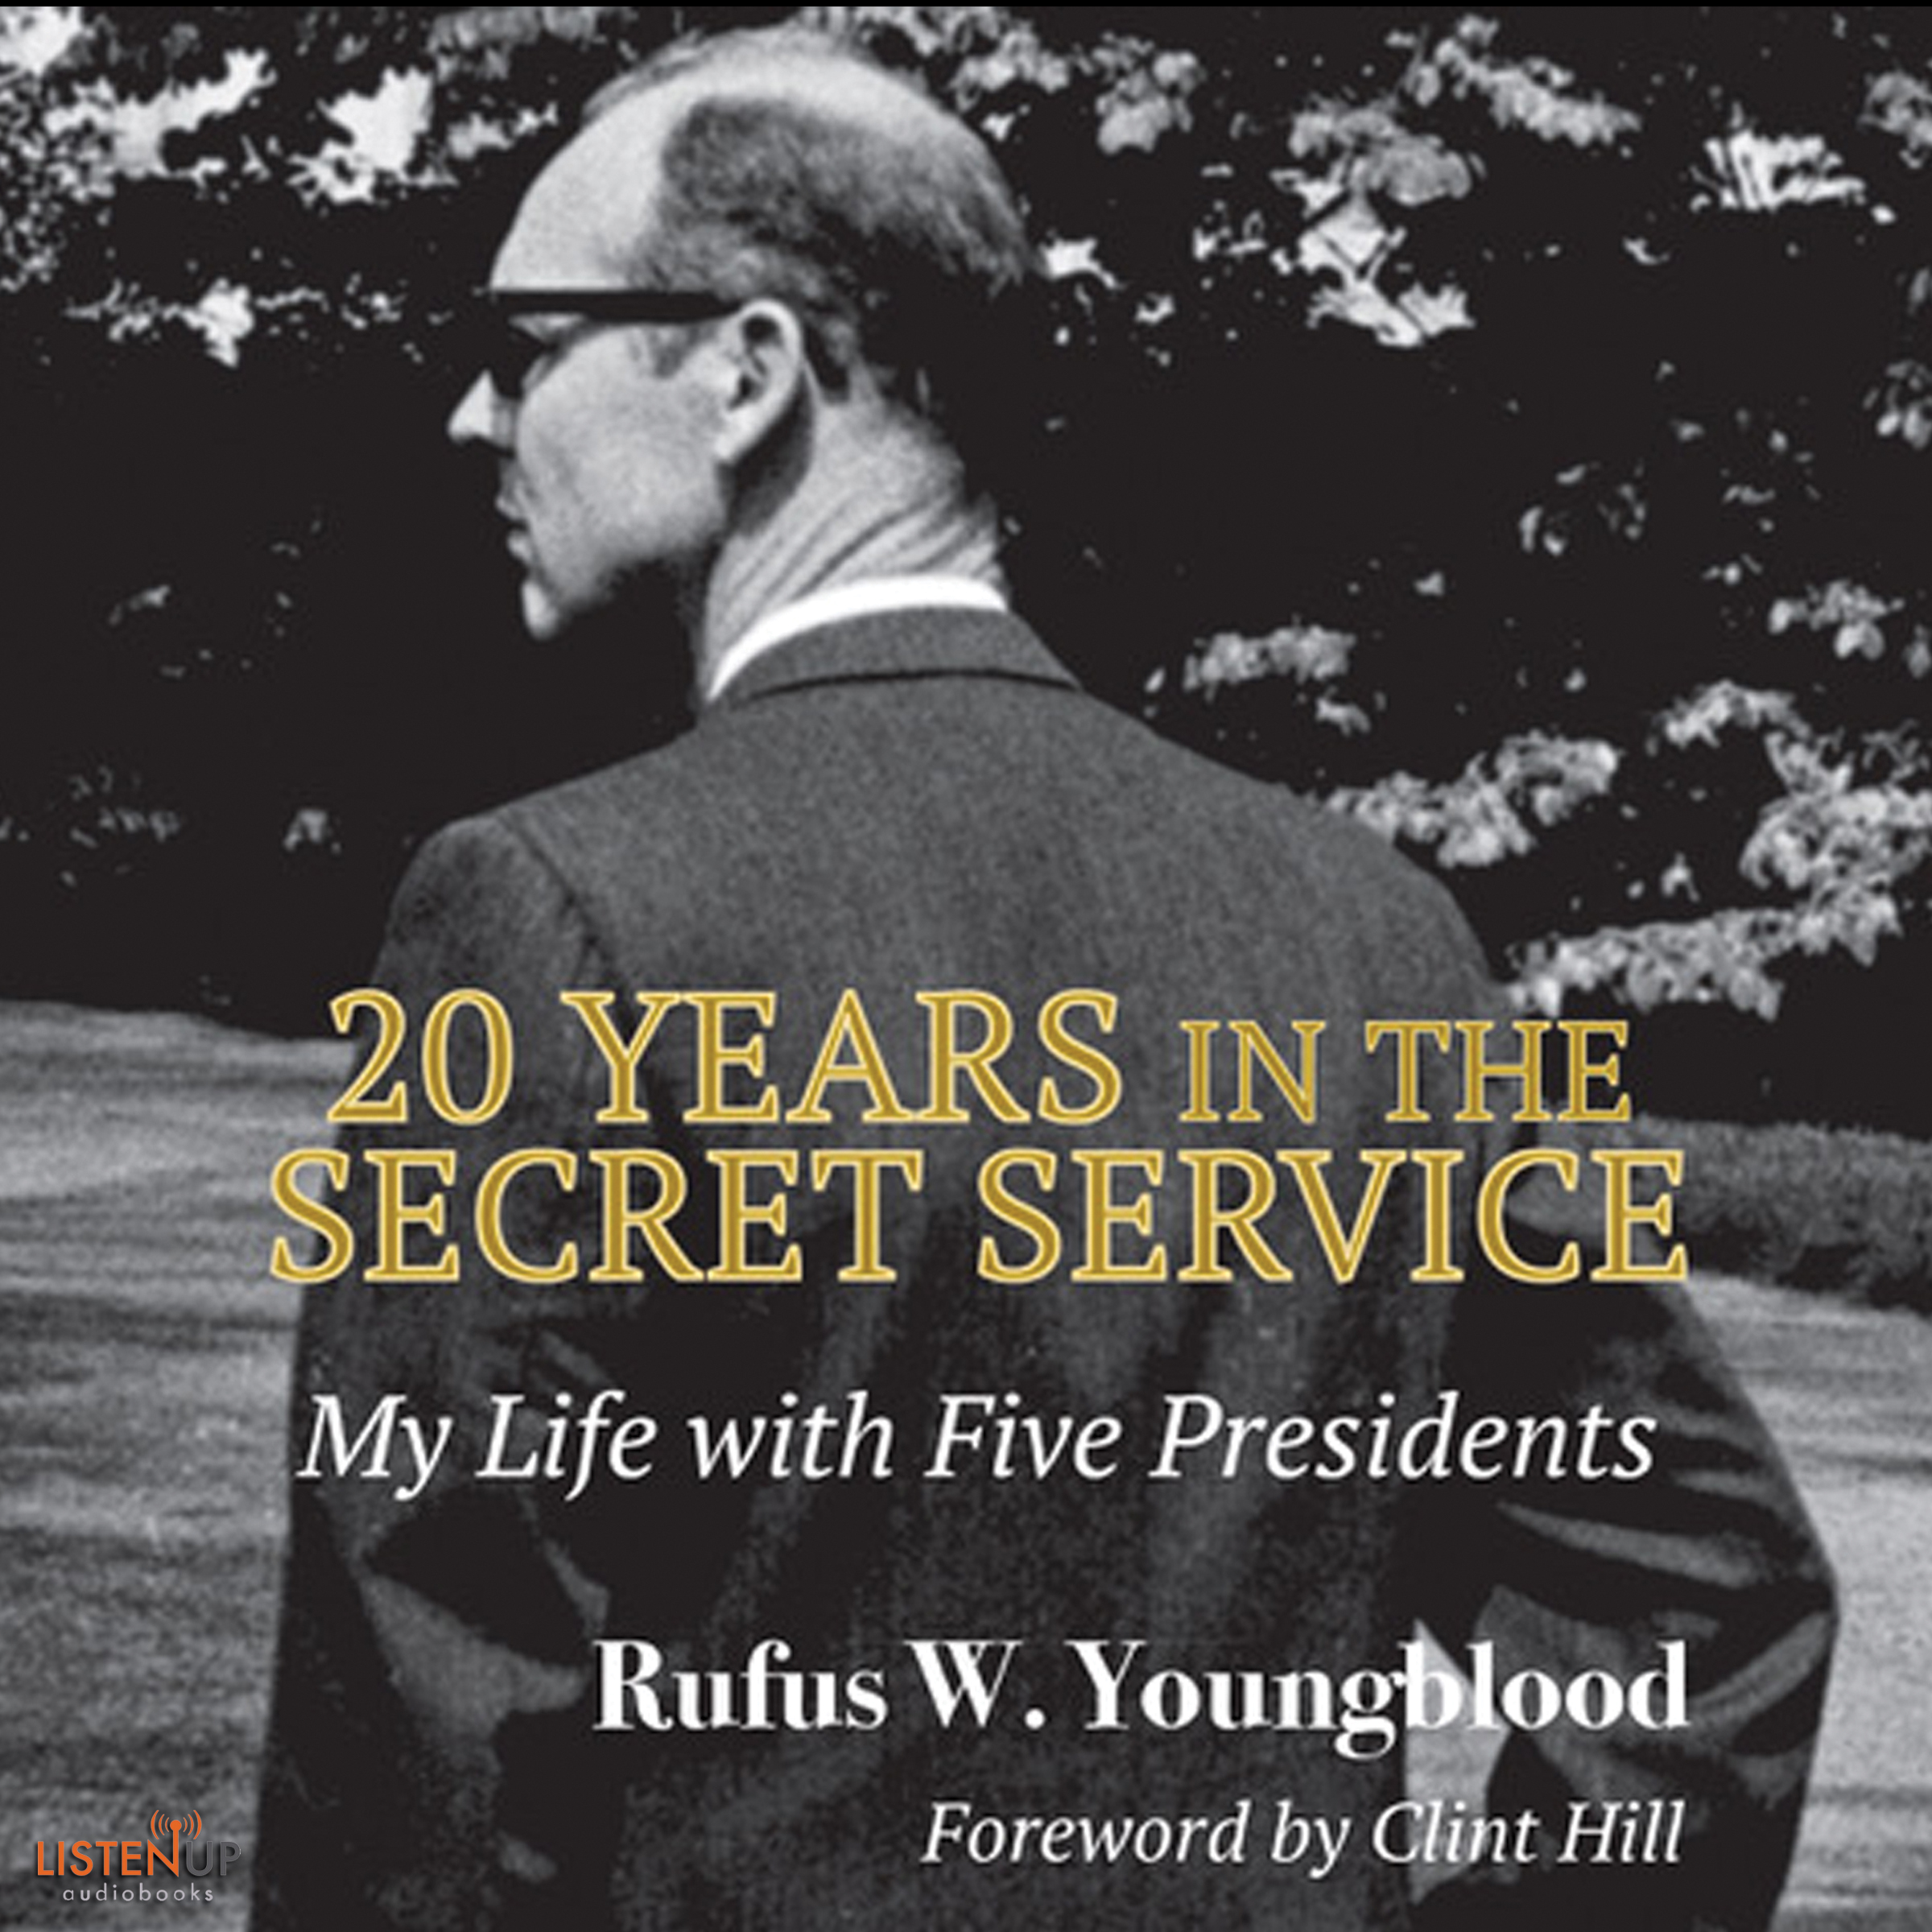 20 Years in the Secret Service cover image